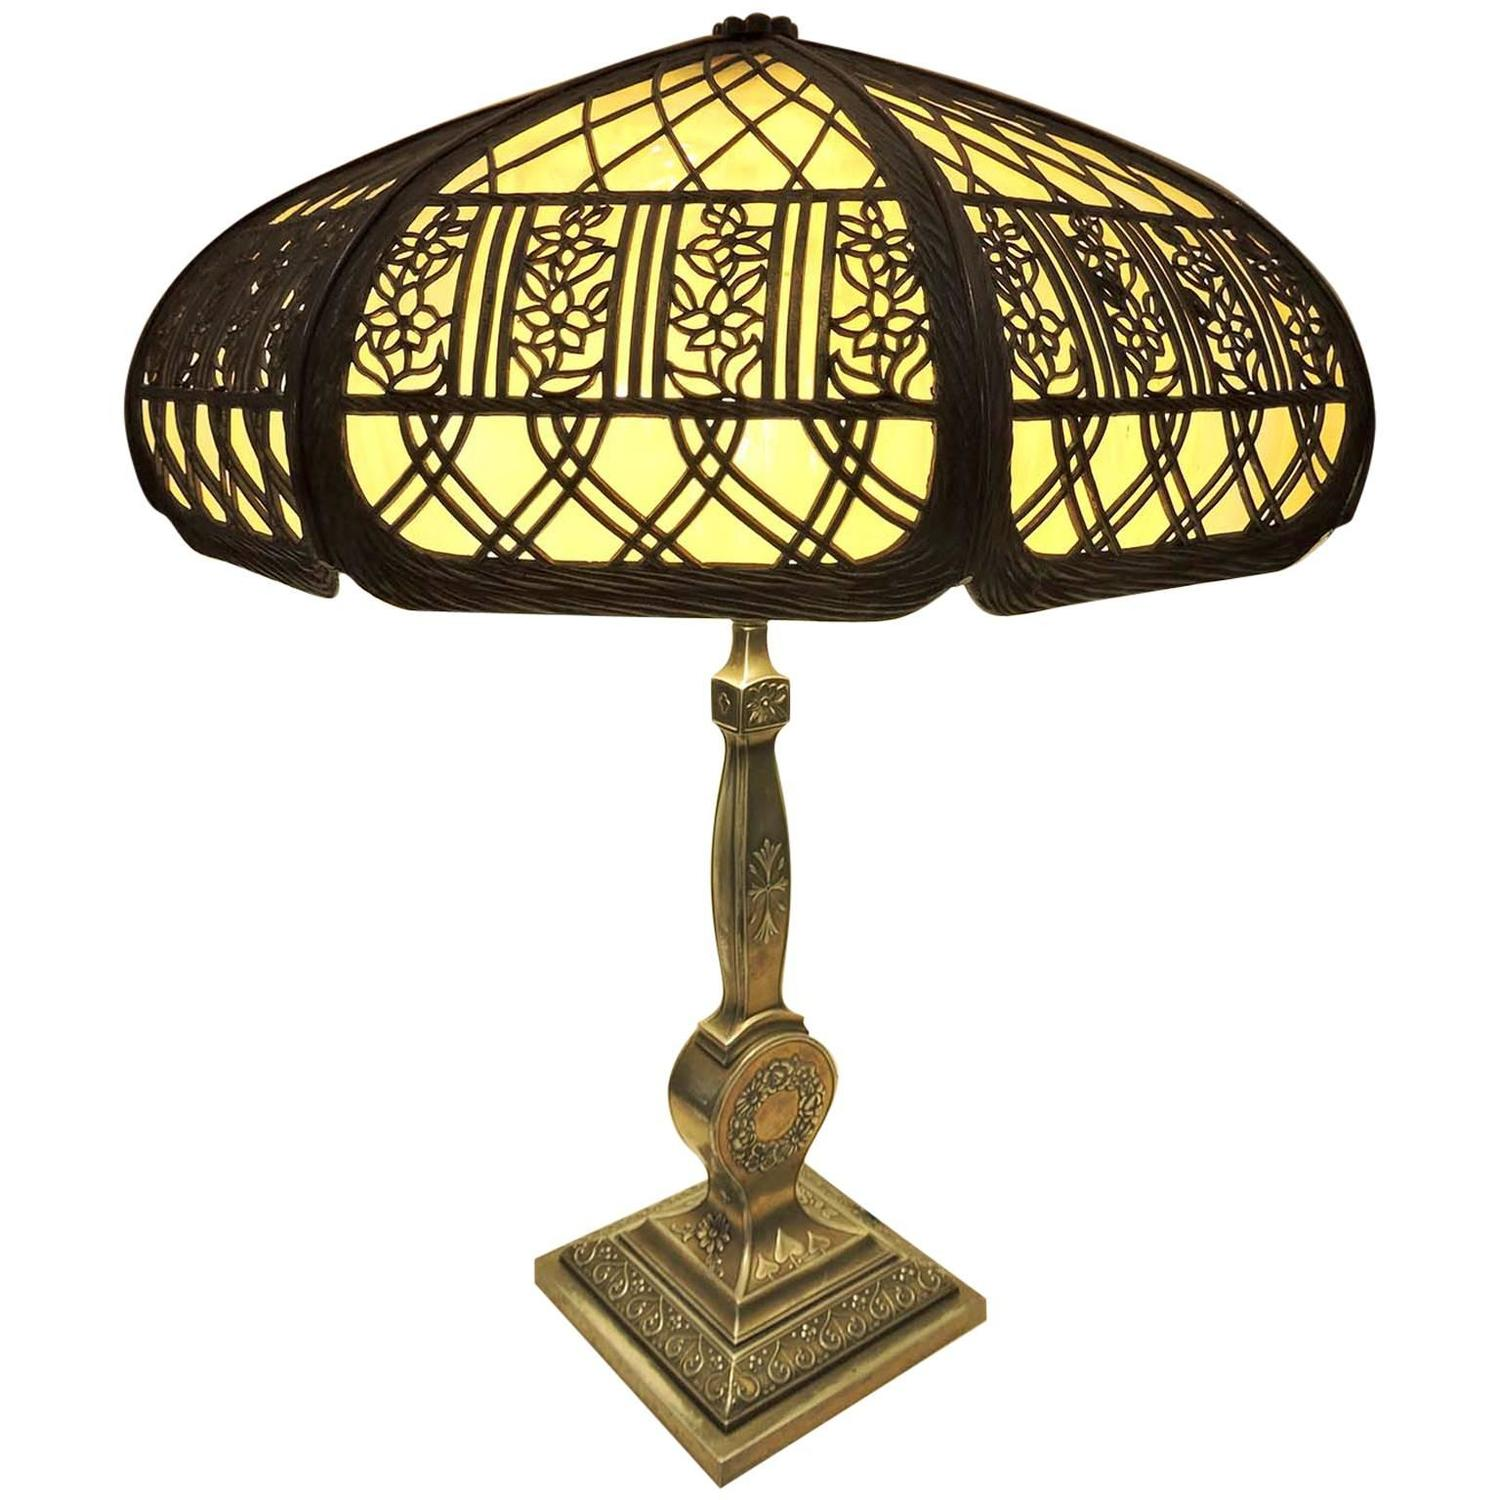 american arts and crafts electric lamp with pairpoint base. Black Bedroom Furniture Sets. Home Design Ideas